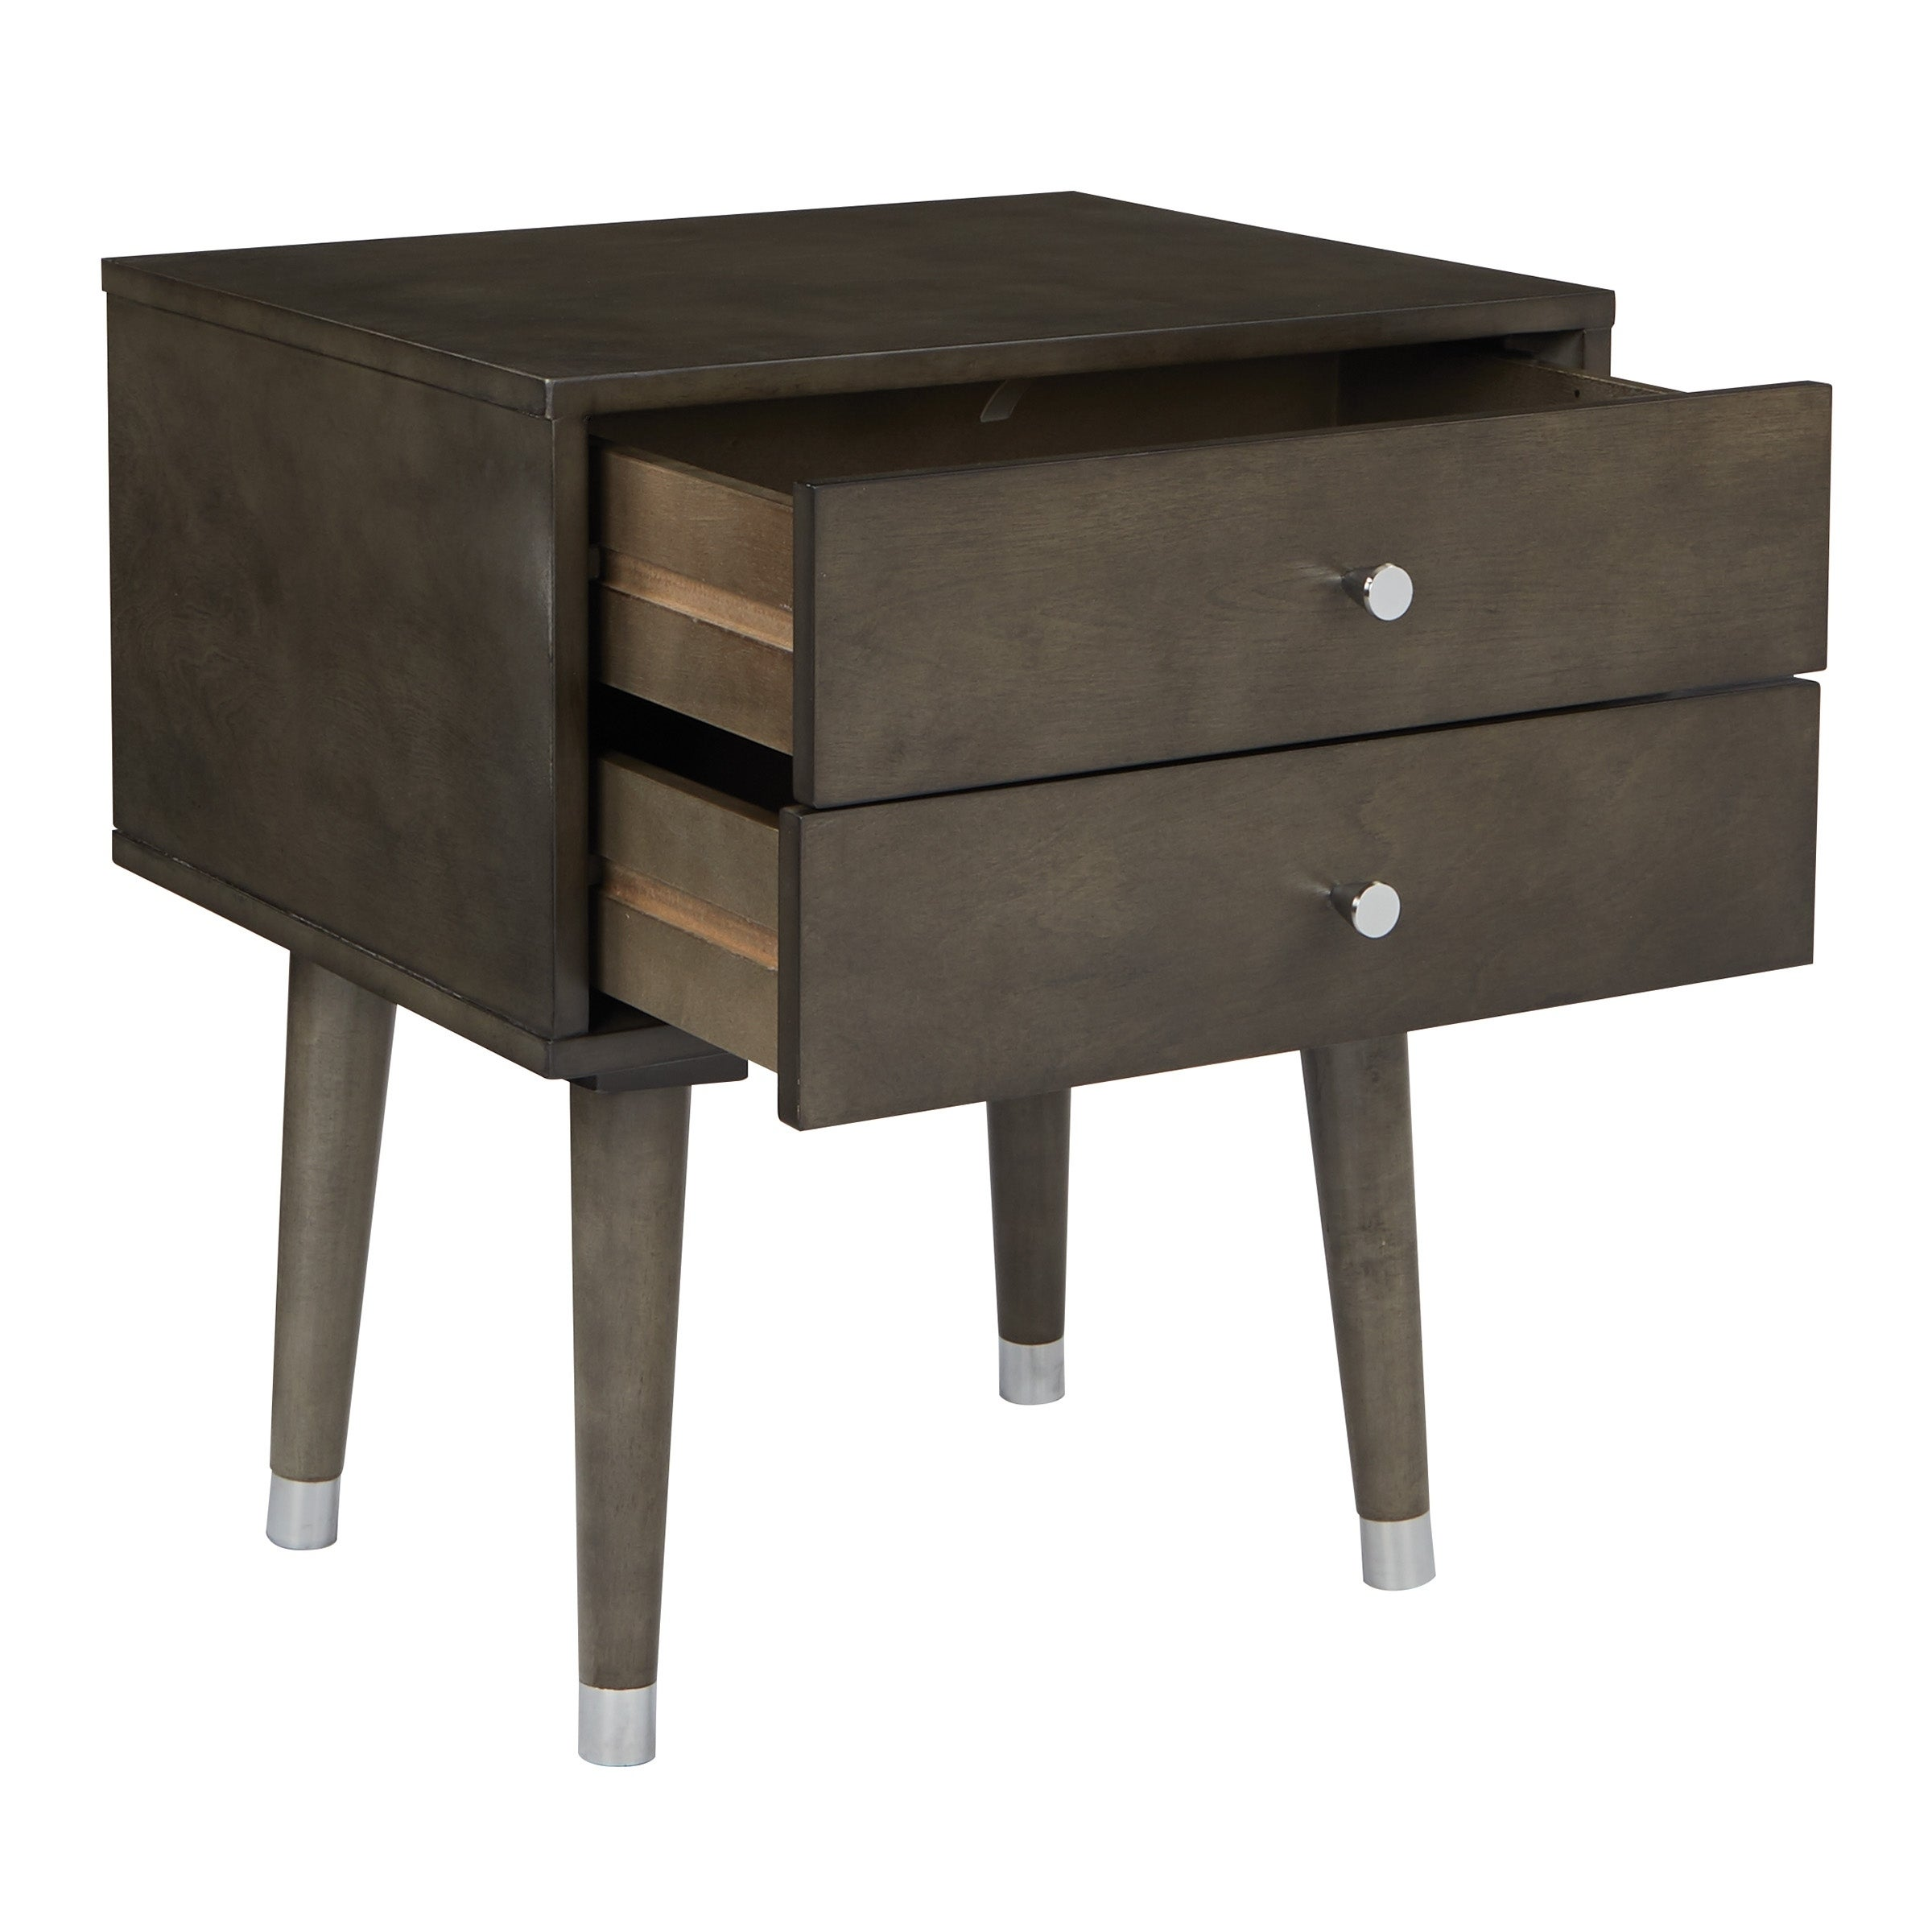 Osp Home Furnishings Cupertino Mid Century Side Table In Grey Free Shipping Today 21612979